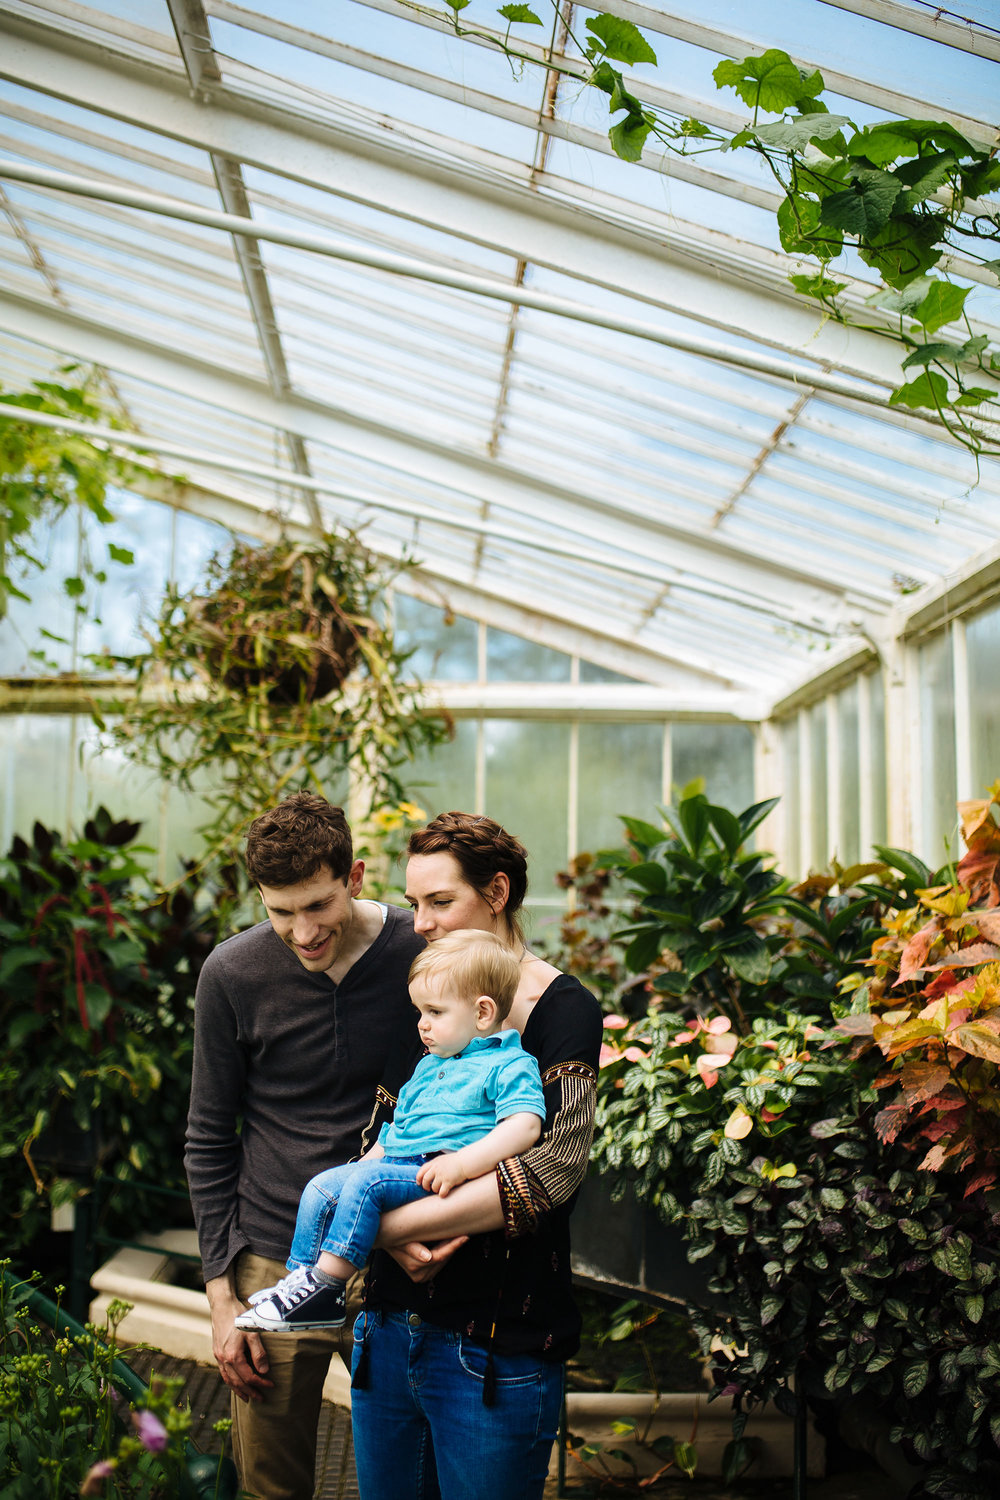 KEW GARDENS FAMILY PHOTOSHOOT00019.jpg